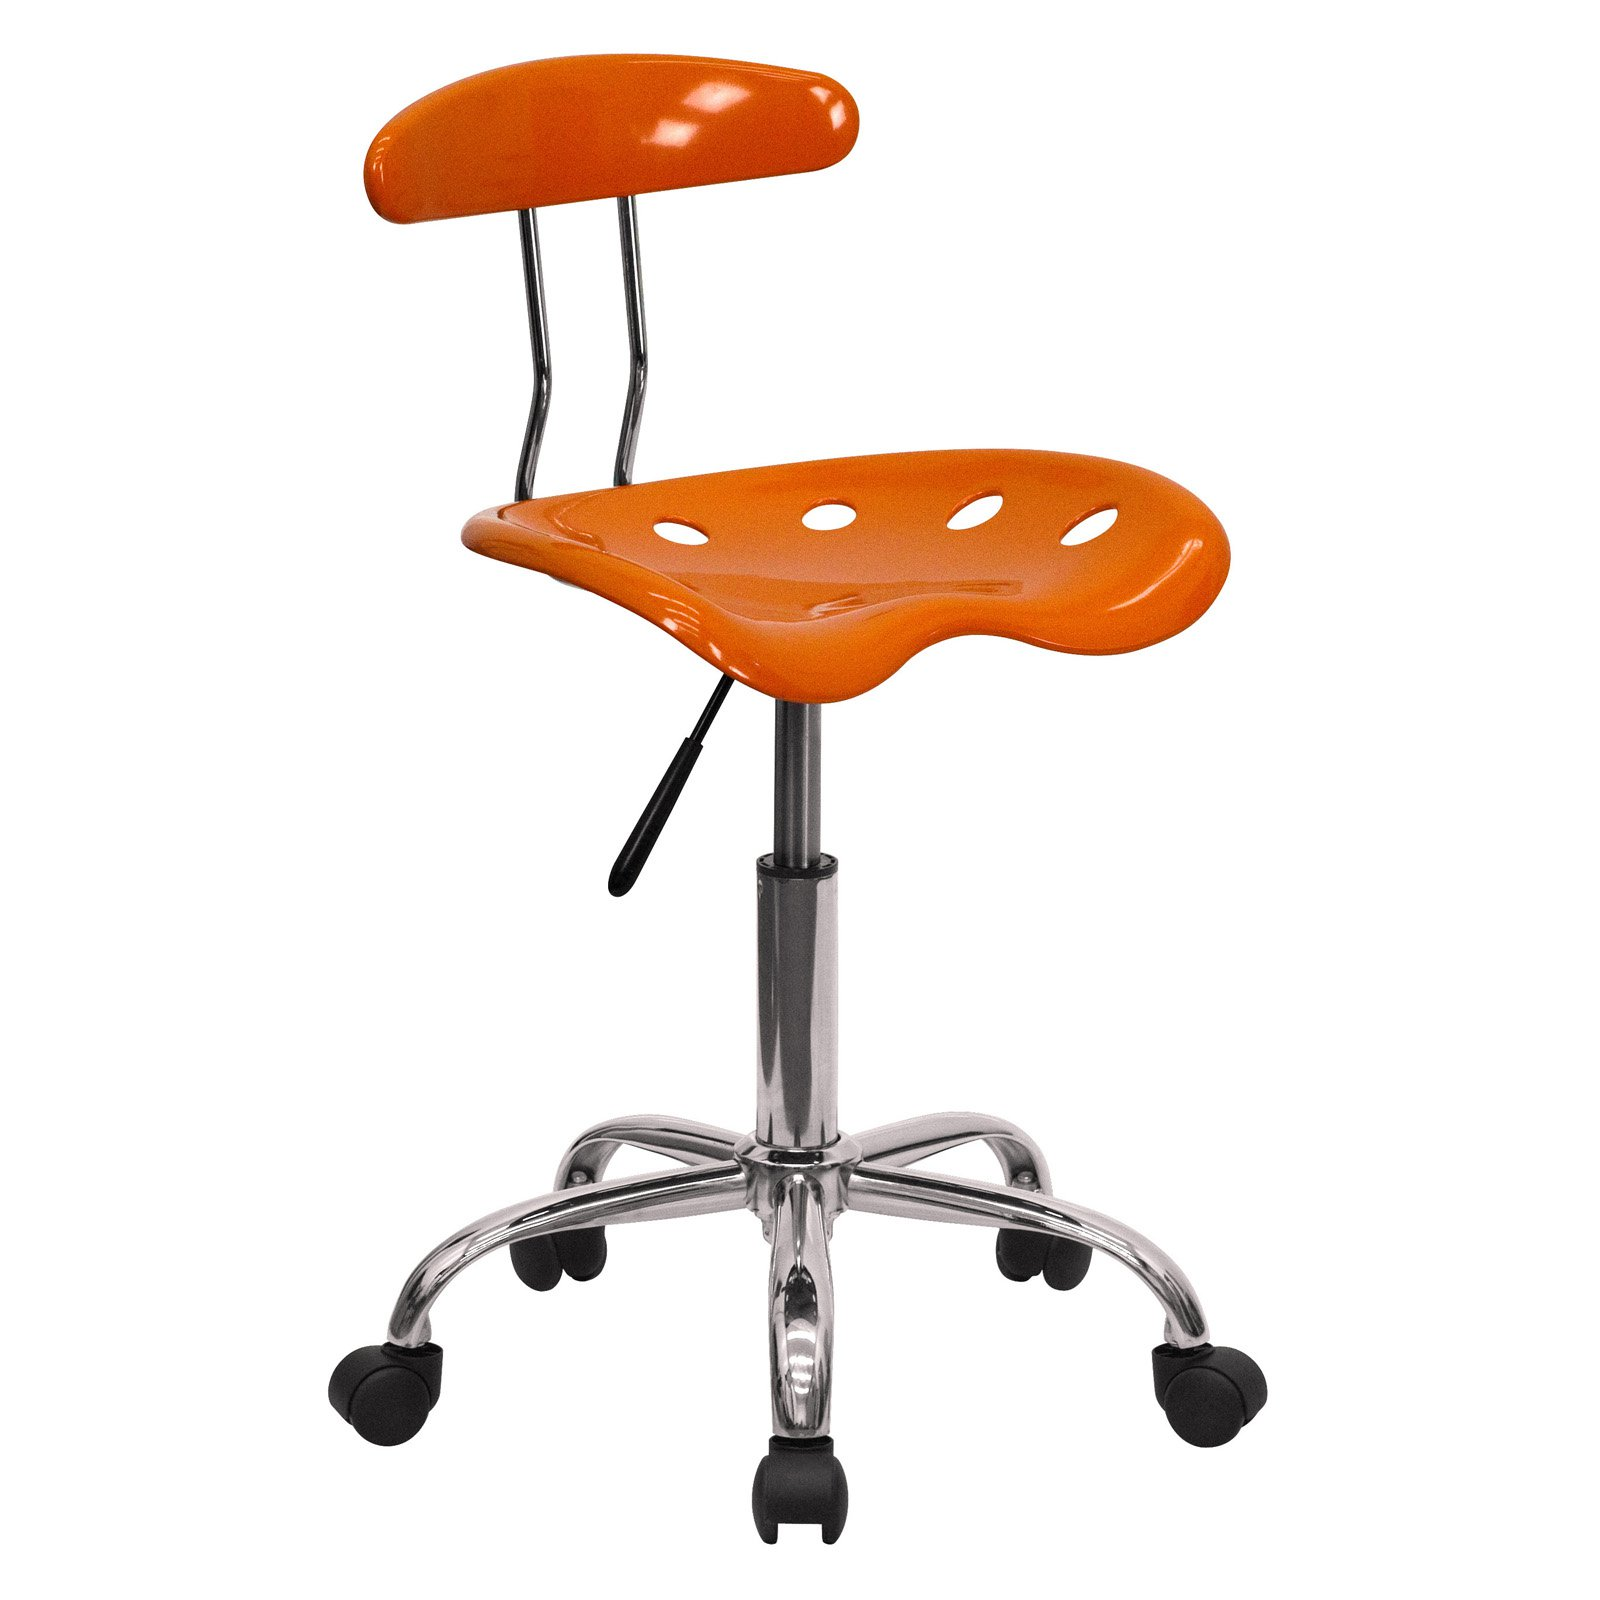 Attirant Computer Task Chair With Tractor Seat, Multiple Colors   Walmart.com